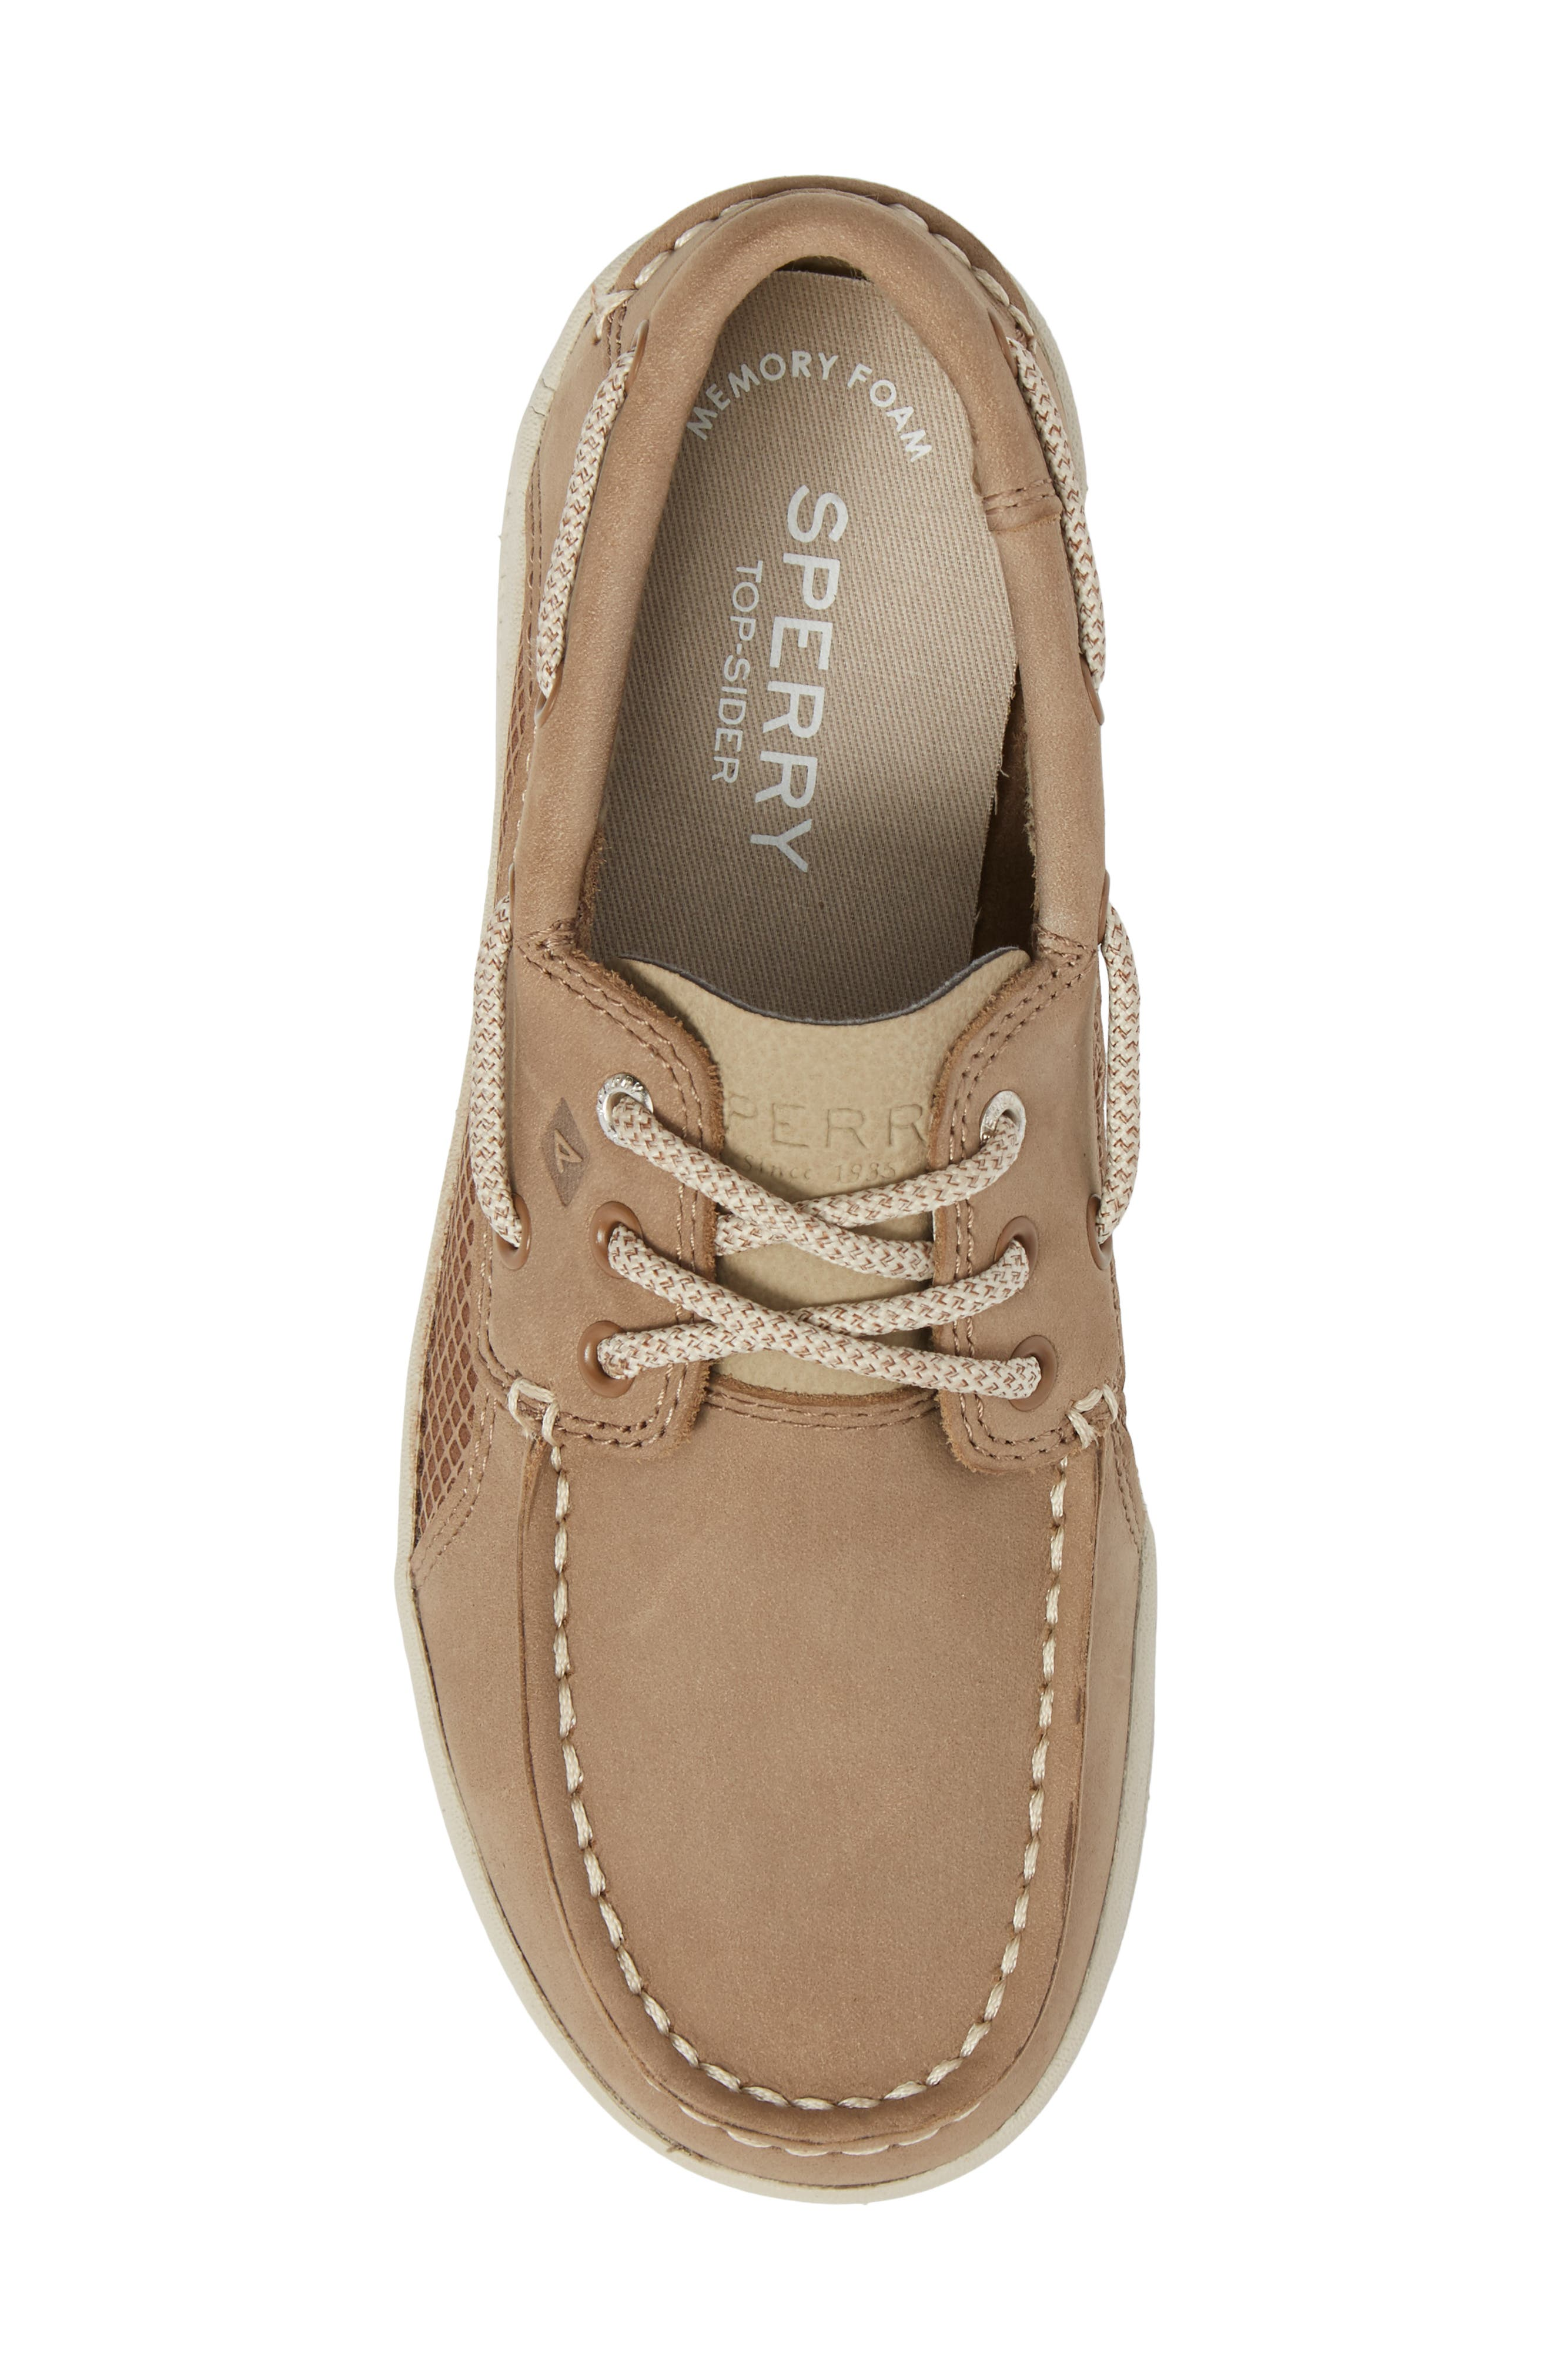 Sperry Gamefish Boat Shoe,                             Alternate thumbnail 5, color,                             Light Tan Leather